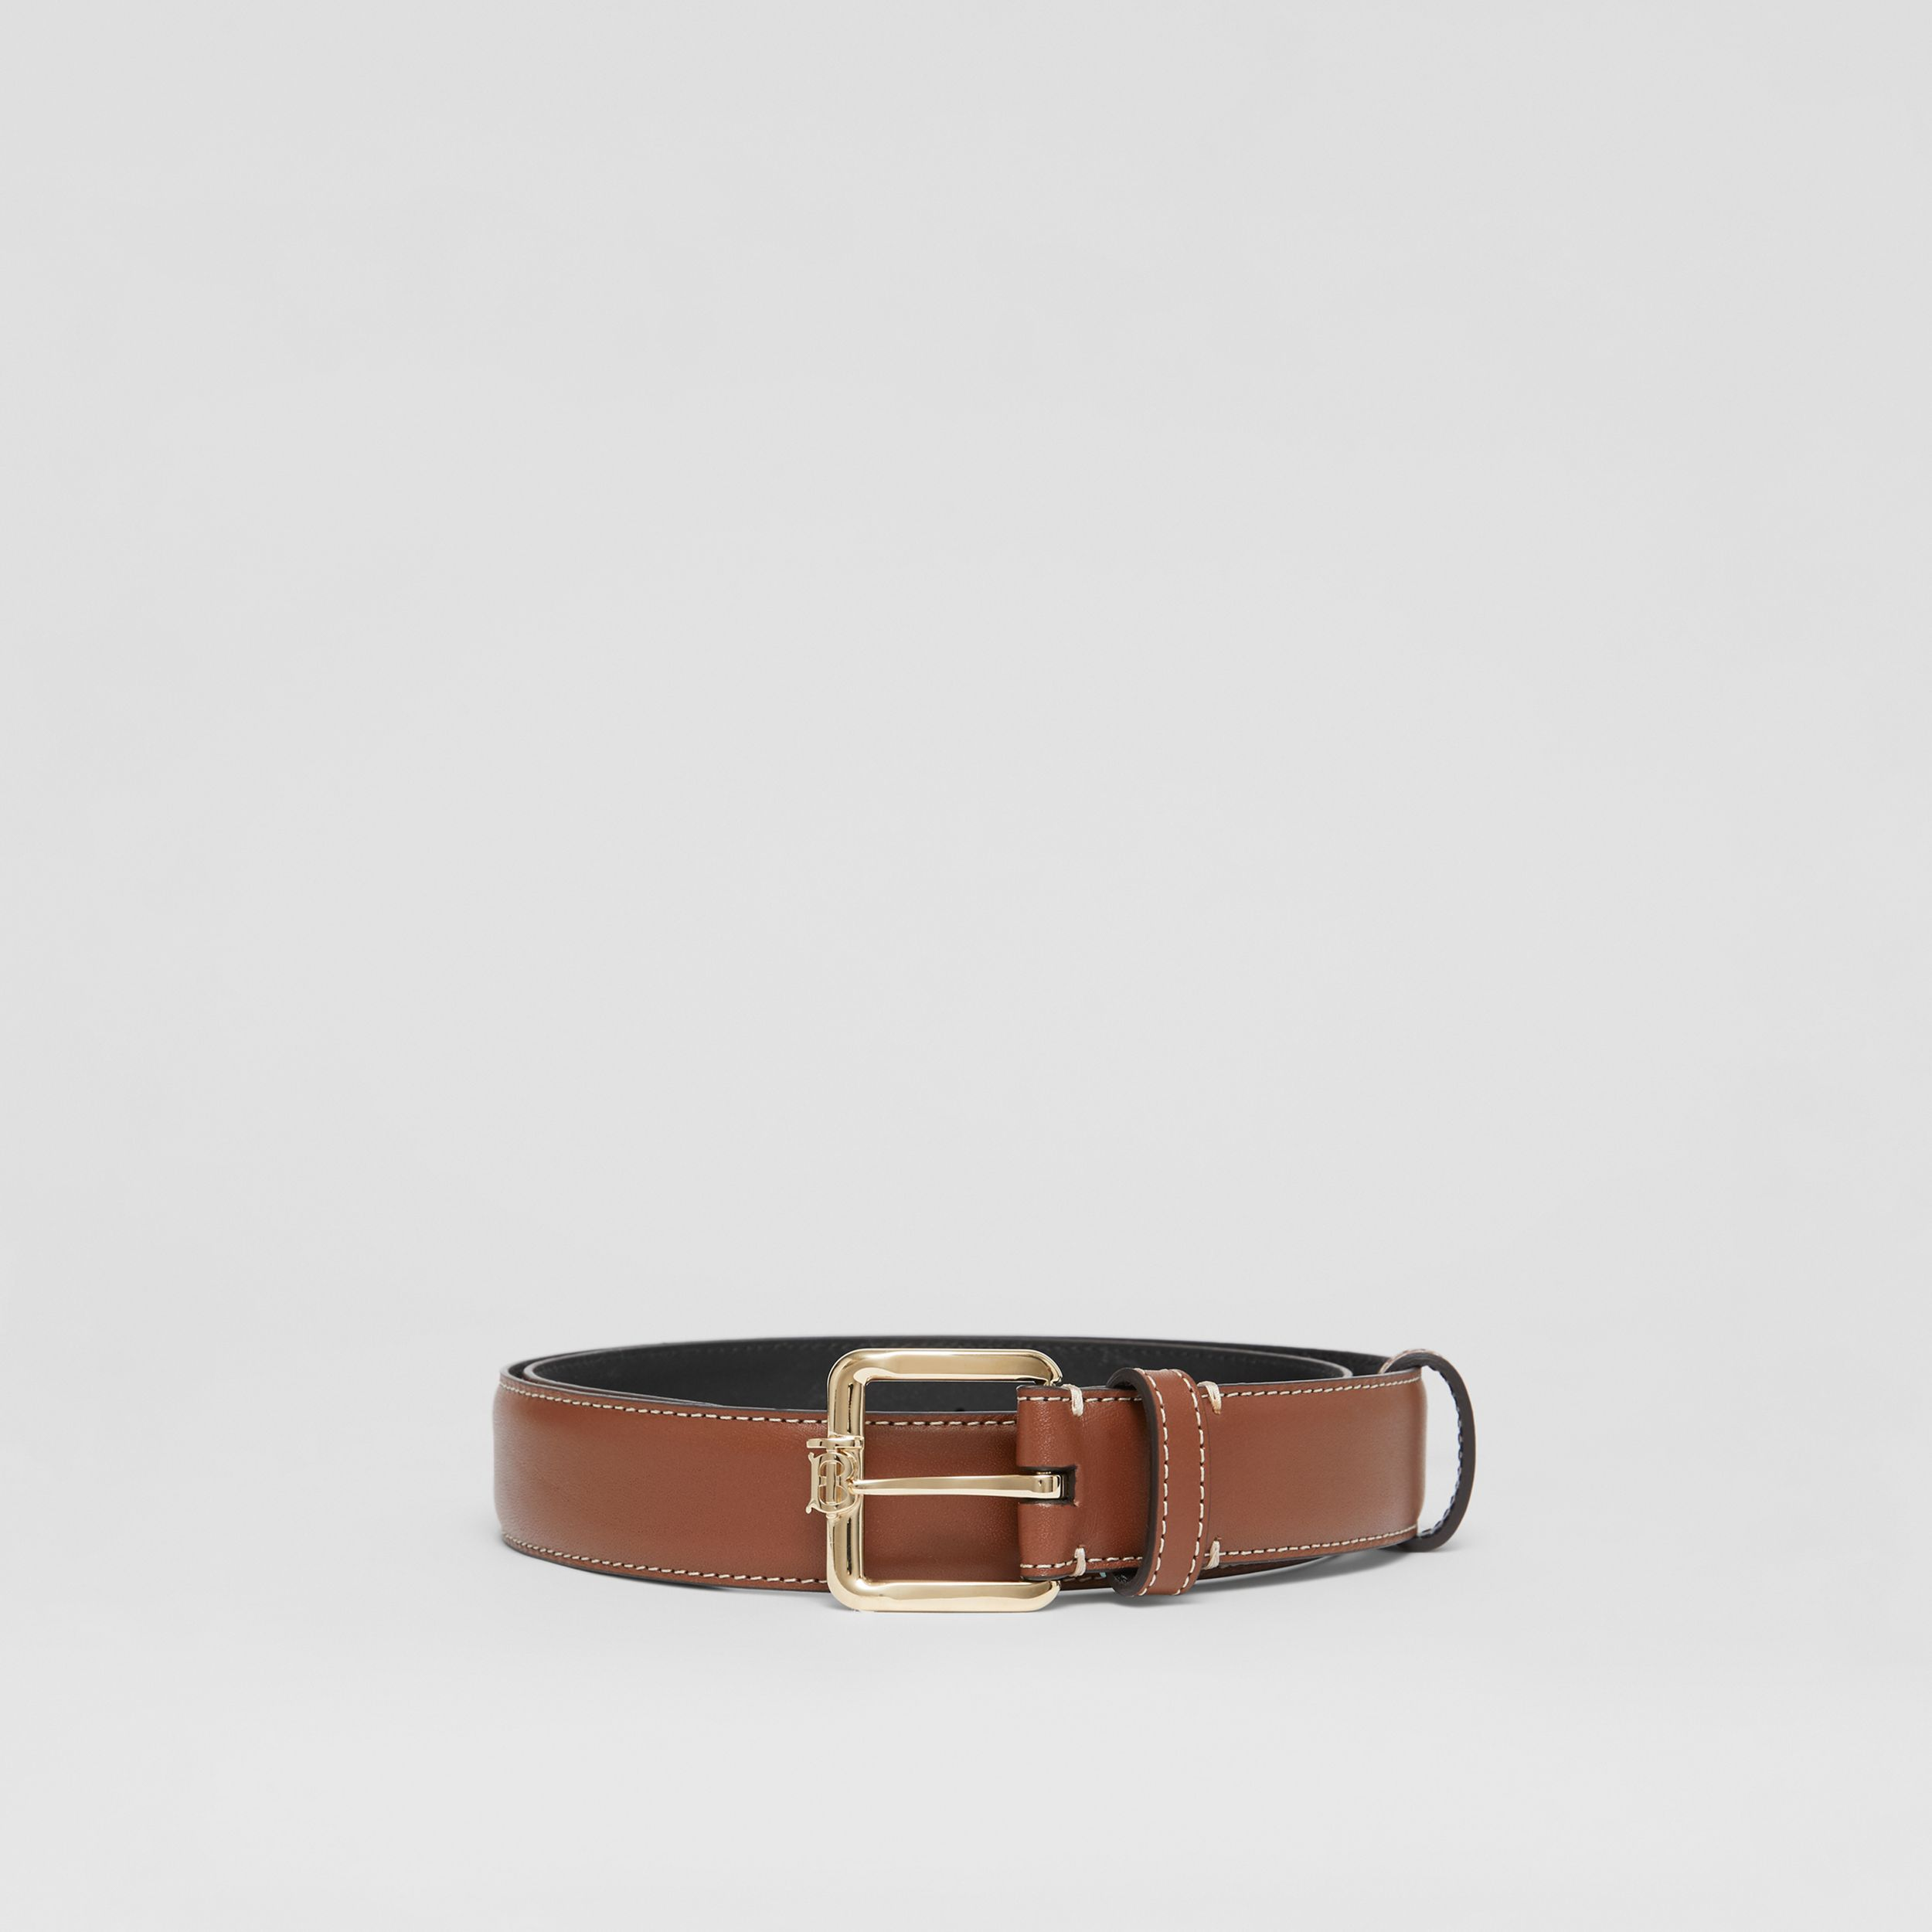 Monogram Motif Topstitched Leather Belt in Tan/light Gold - Women | Burberry United Kingdom - 4